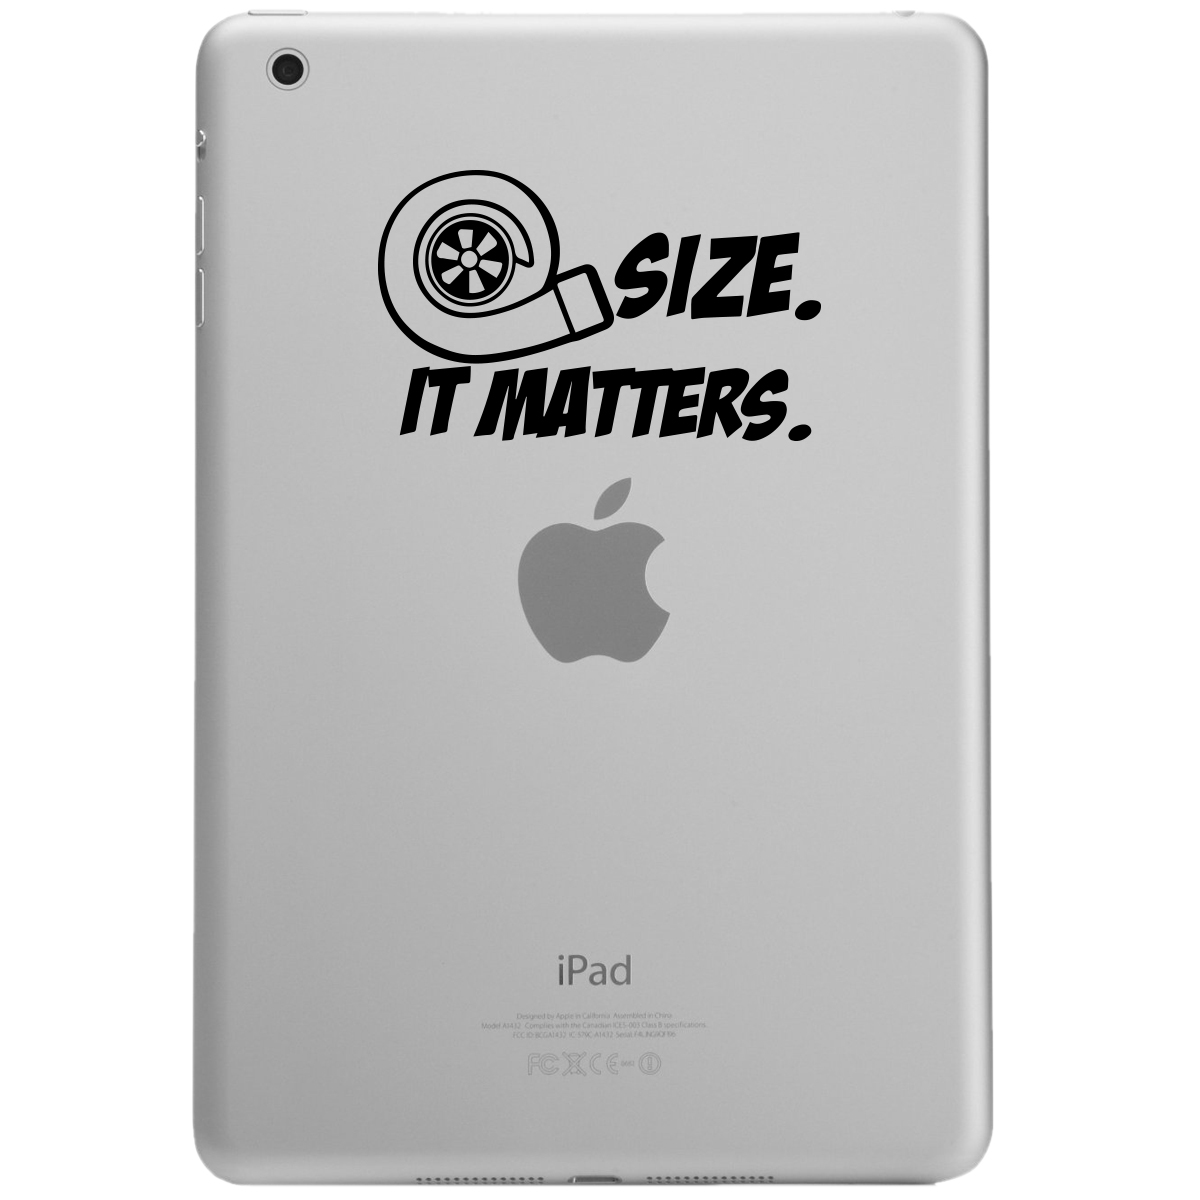 JDM Size Matters Turbo Boost iPad Tablet Vinyl Sticker Decal